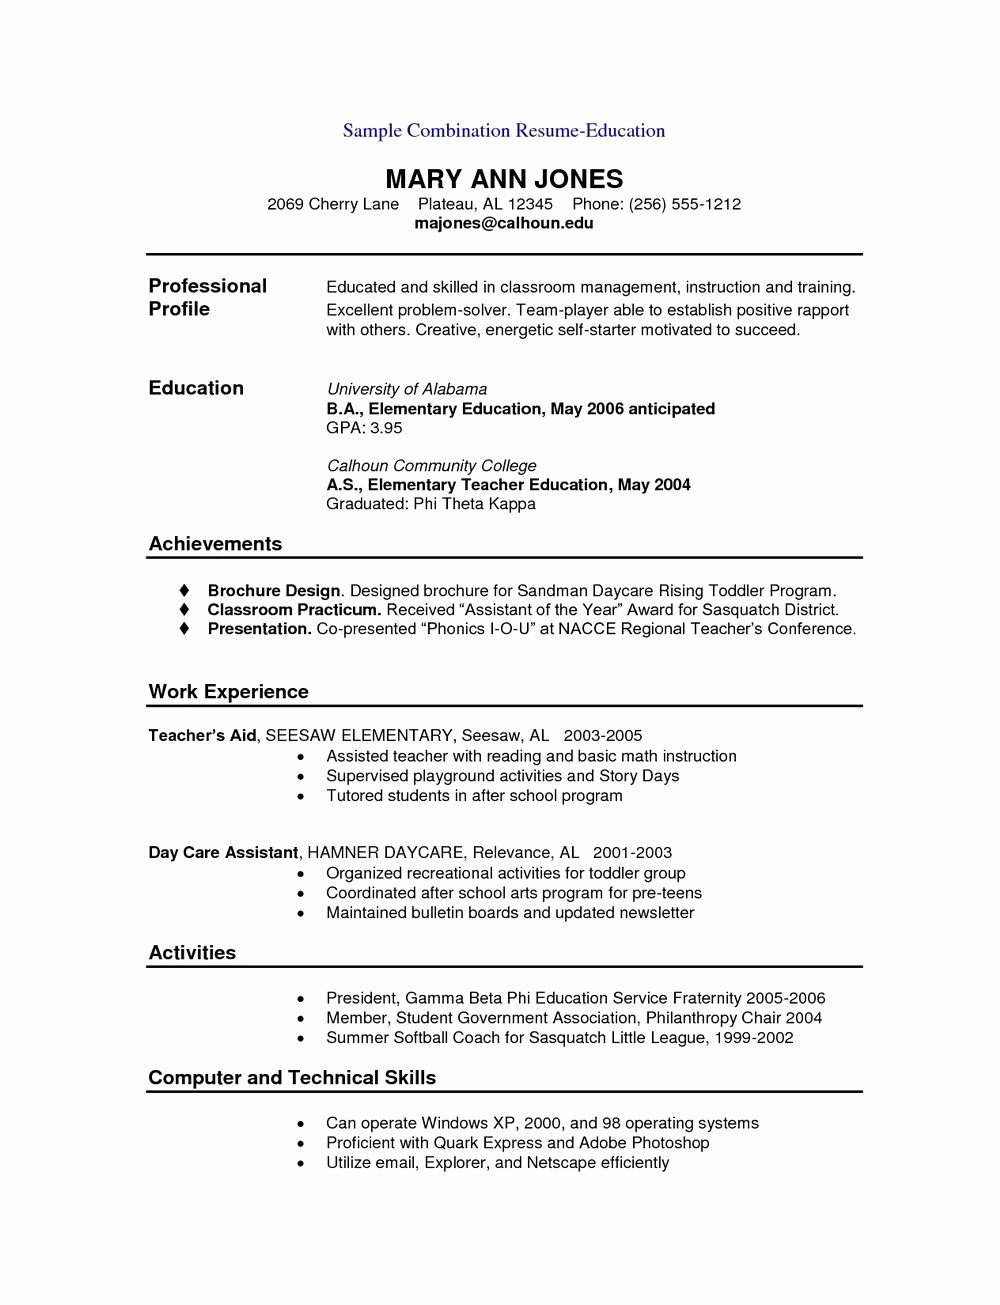 Free Resume Templates Download Pdf Best Of Free Resume Downloads In Word format Resumes 2104